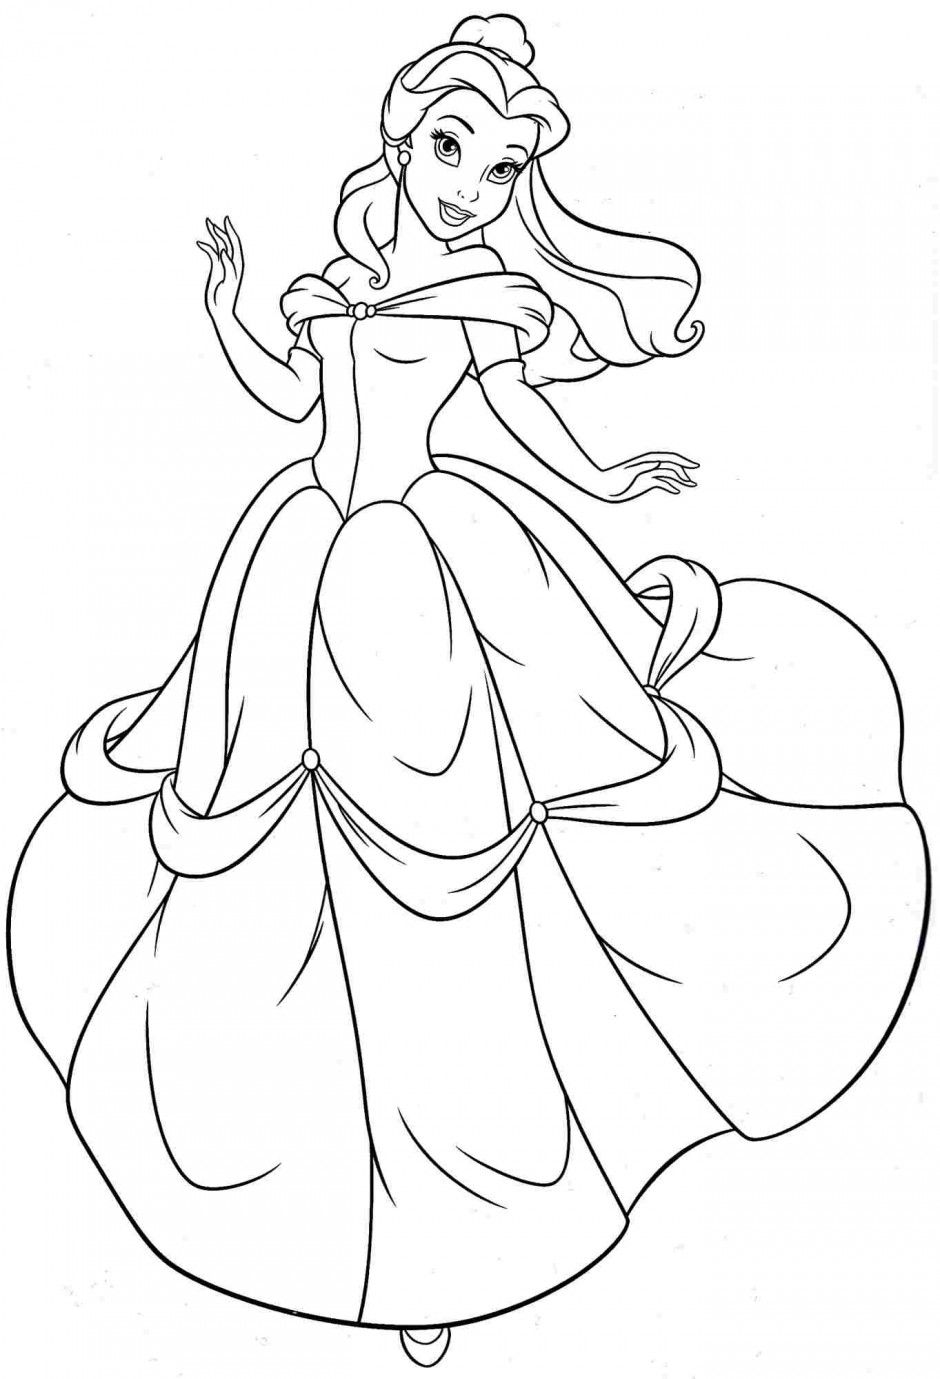 All Princess Coloring Pages Free Printable Coloring Page Disney Princess Coloring 1 Princess Coloring Pages Disney Princess Coloring Pages Princess Coloring